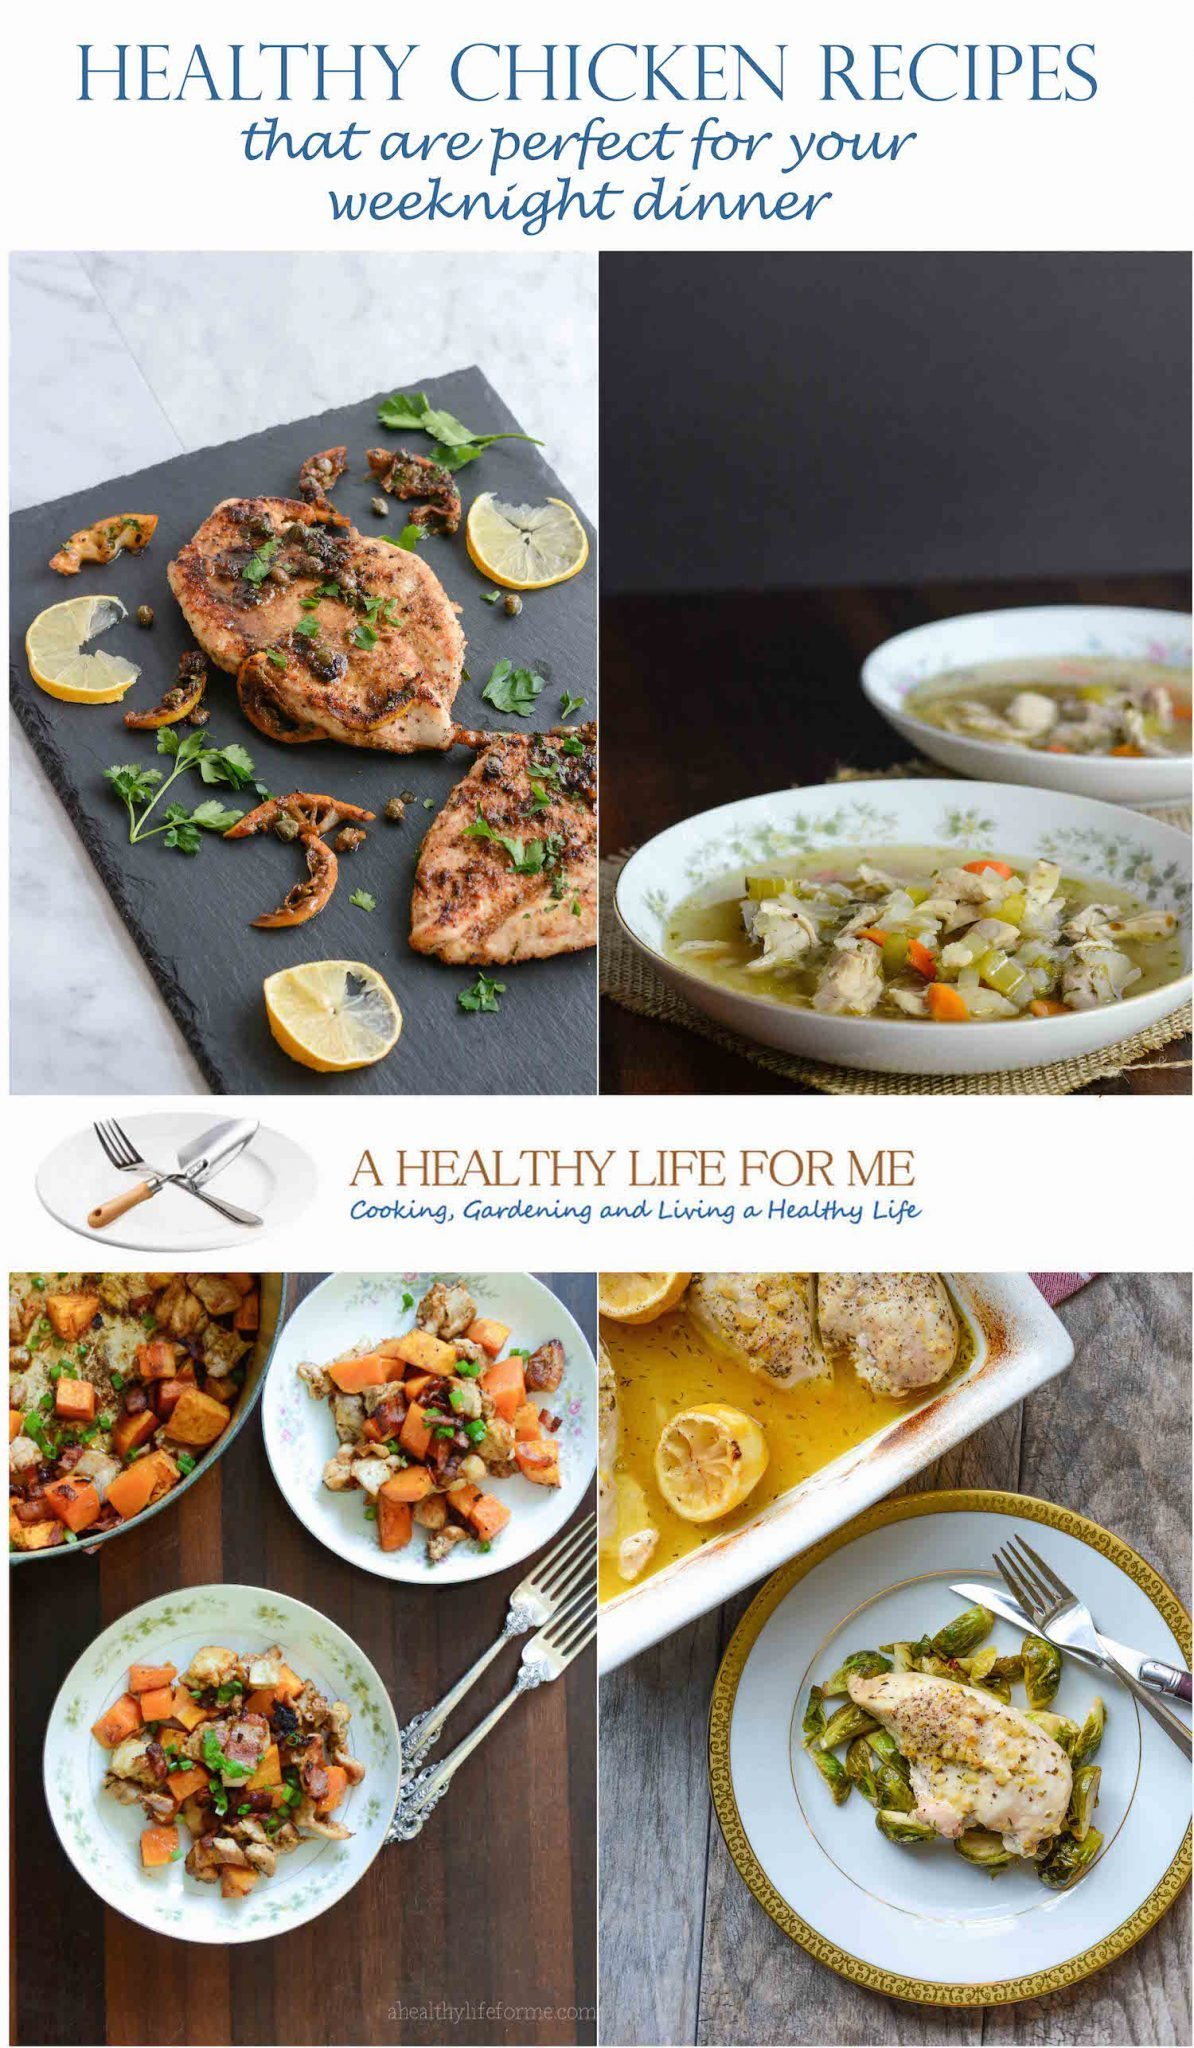 Healthy chicken recipes for dinner a healthy life for me chicken piccata is a flavorful and delicious healthy light gluten free grain free paleo clean eating recipe this is one delicious recipe the lemon forumfinder Choice Image